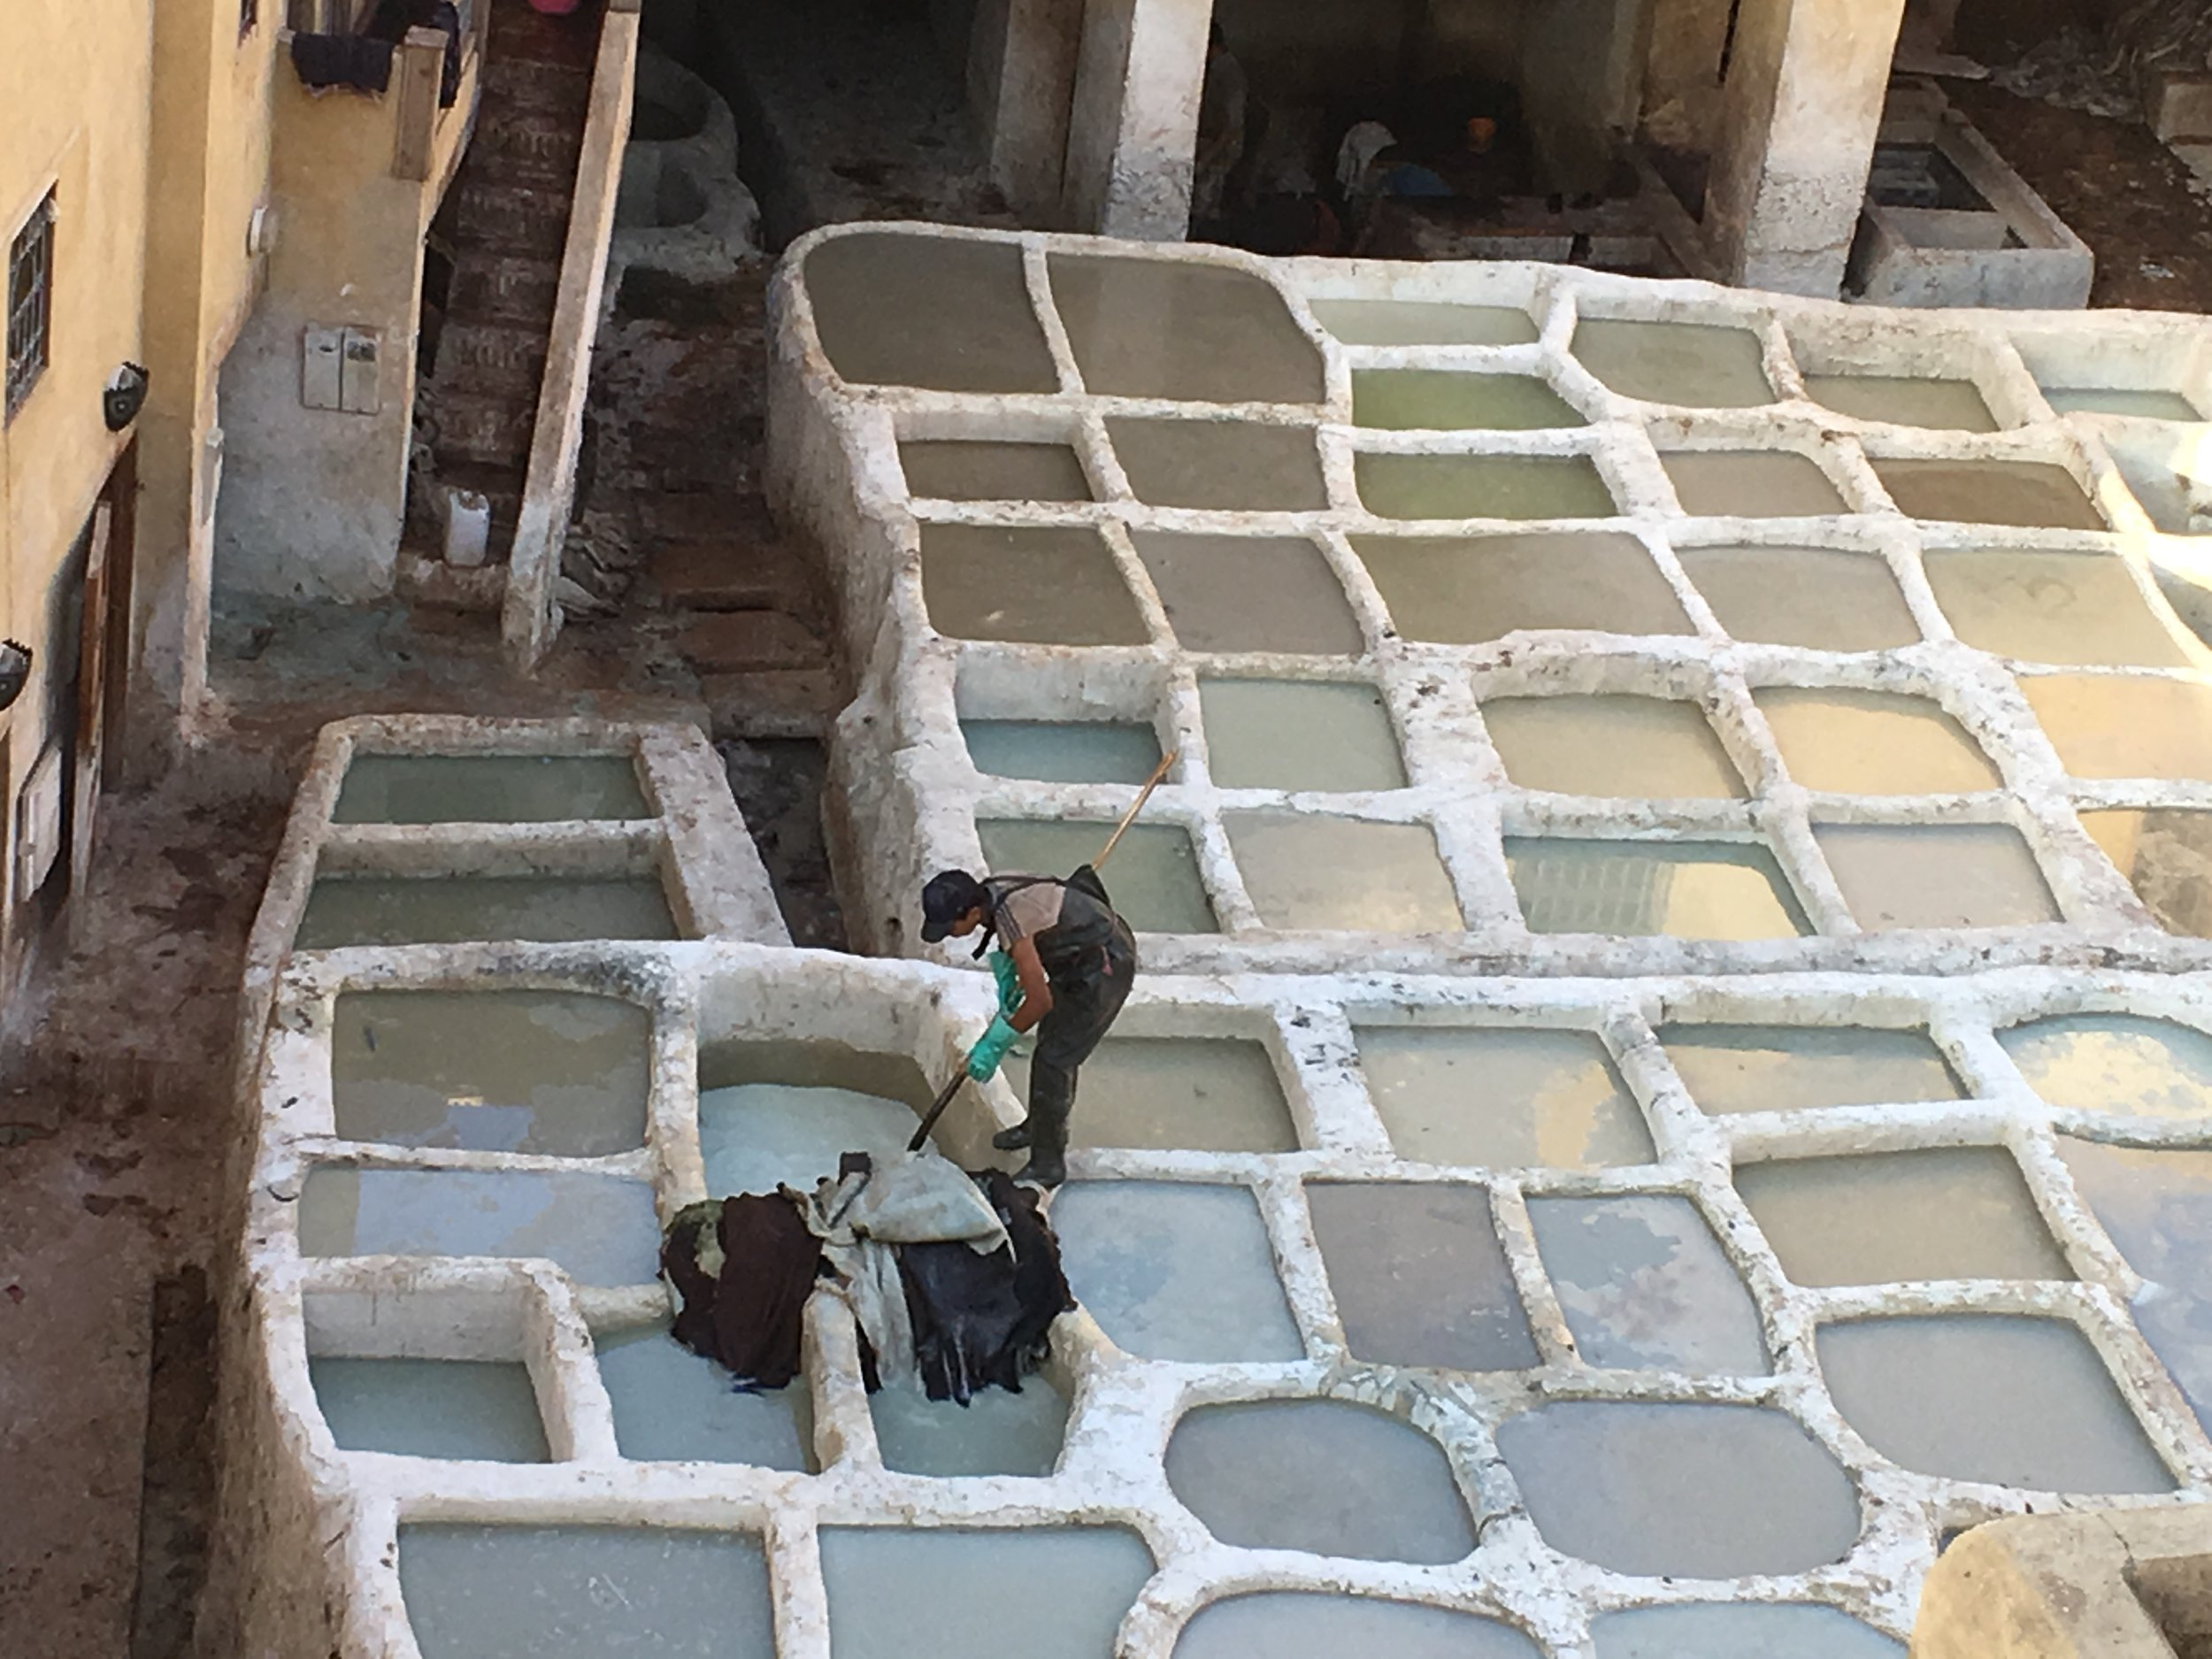 The Chaouwara tanneries are the oldest in Africa having been built in medieval times and refurbished in 2016. The process remains unchanged and many of the workers are from the same family who orally pass down the technique through the generations.